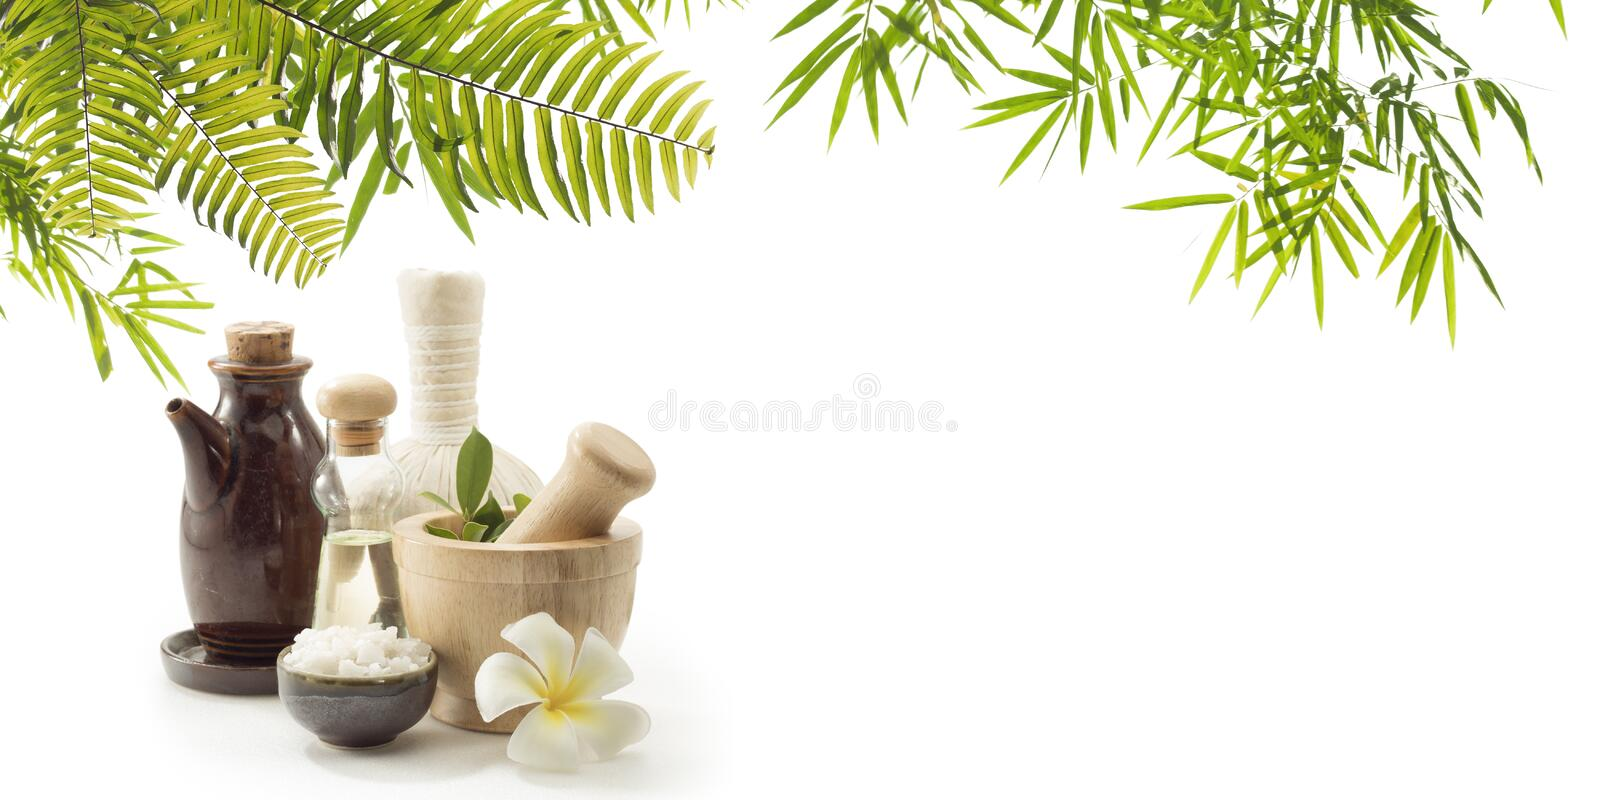 oil and Herbal Compress on white back. banner stock image